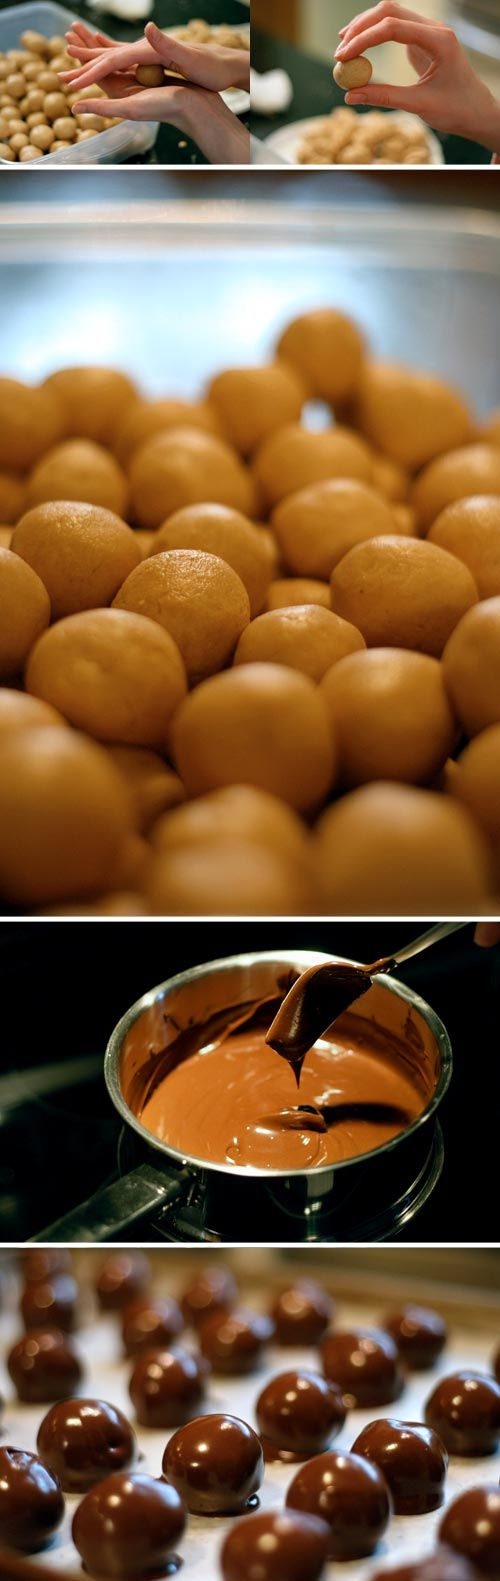 Peanut butter balls- I used to make these all the time! Everybody loved them!